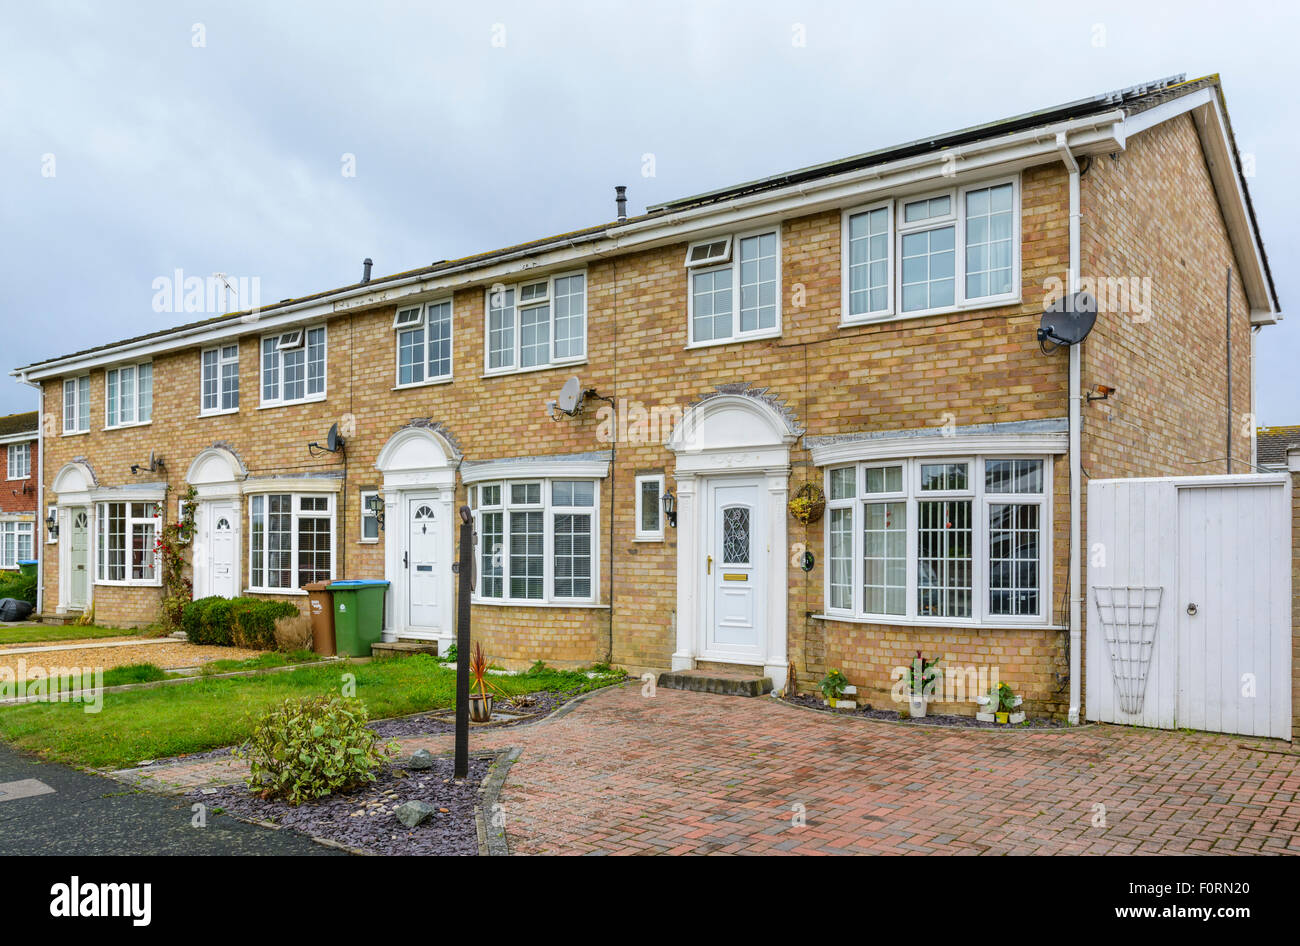 Row of modern terraced 2 storey brick houses in england uk stock image